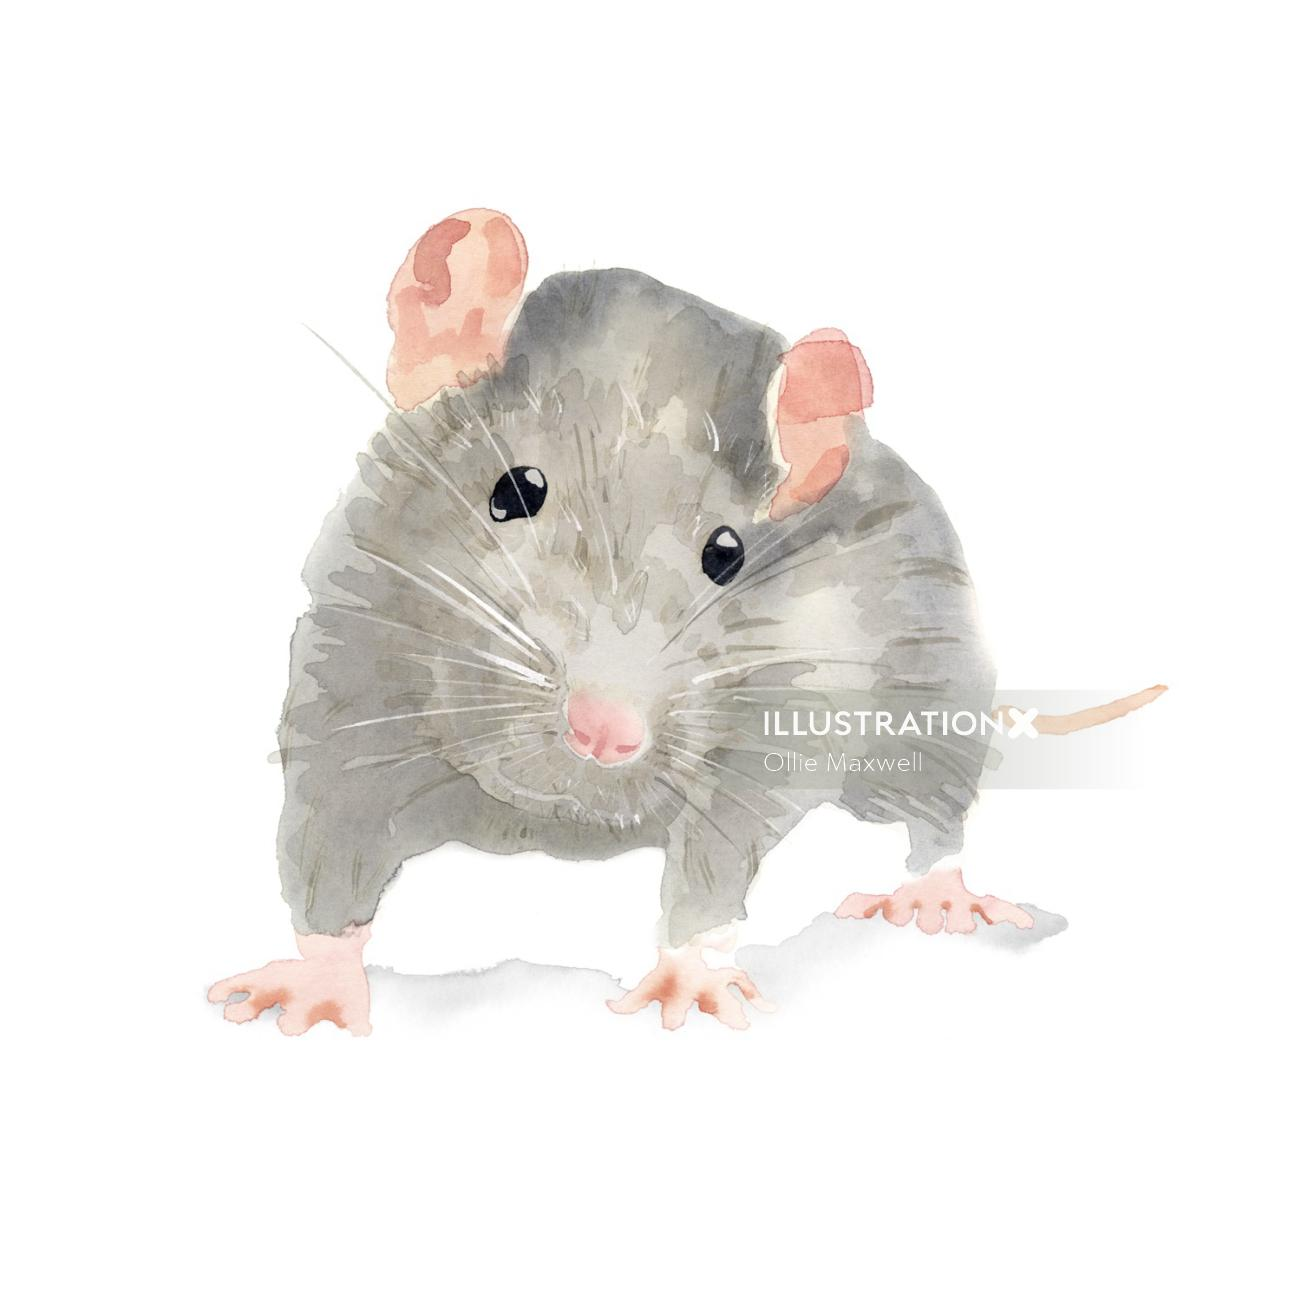 Rat Illustration by Ollie Maxwell